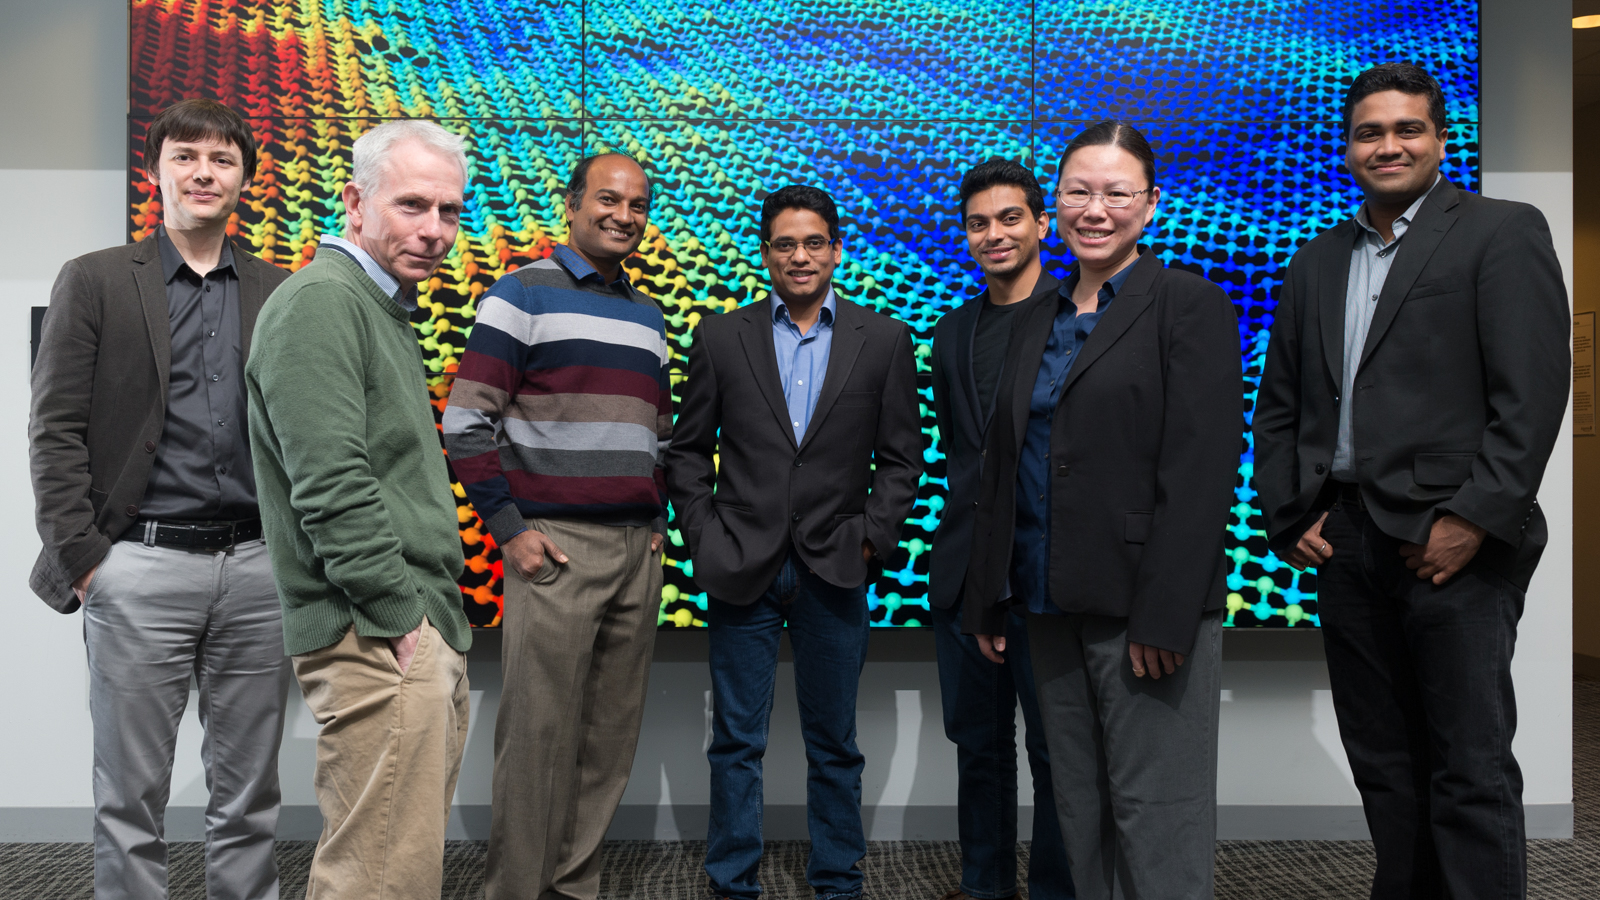 The Argonne research team that has pioneered the use of machine learning tools in 2-D material modeling.